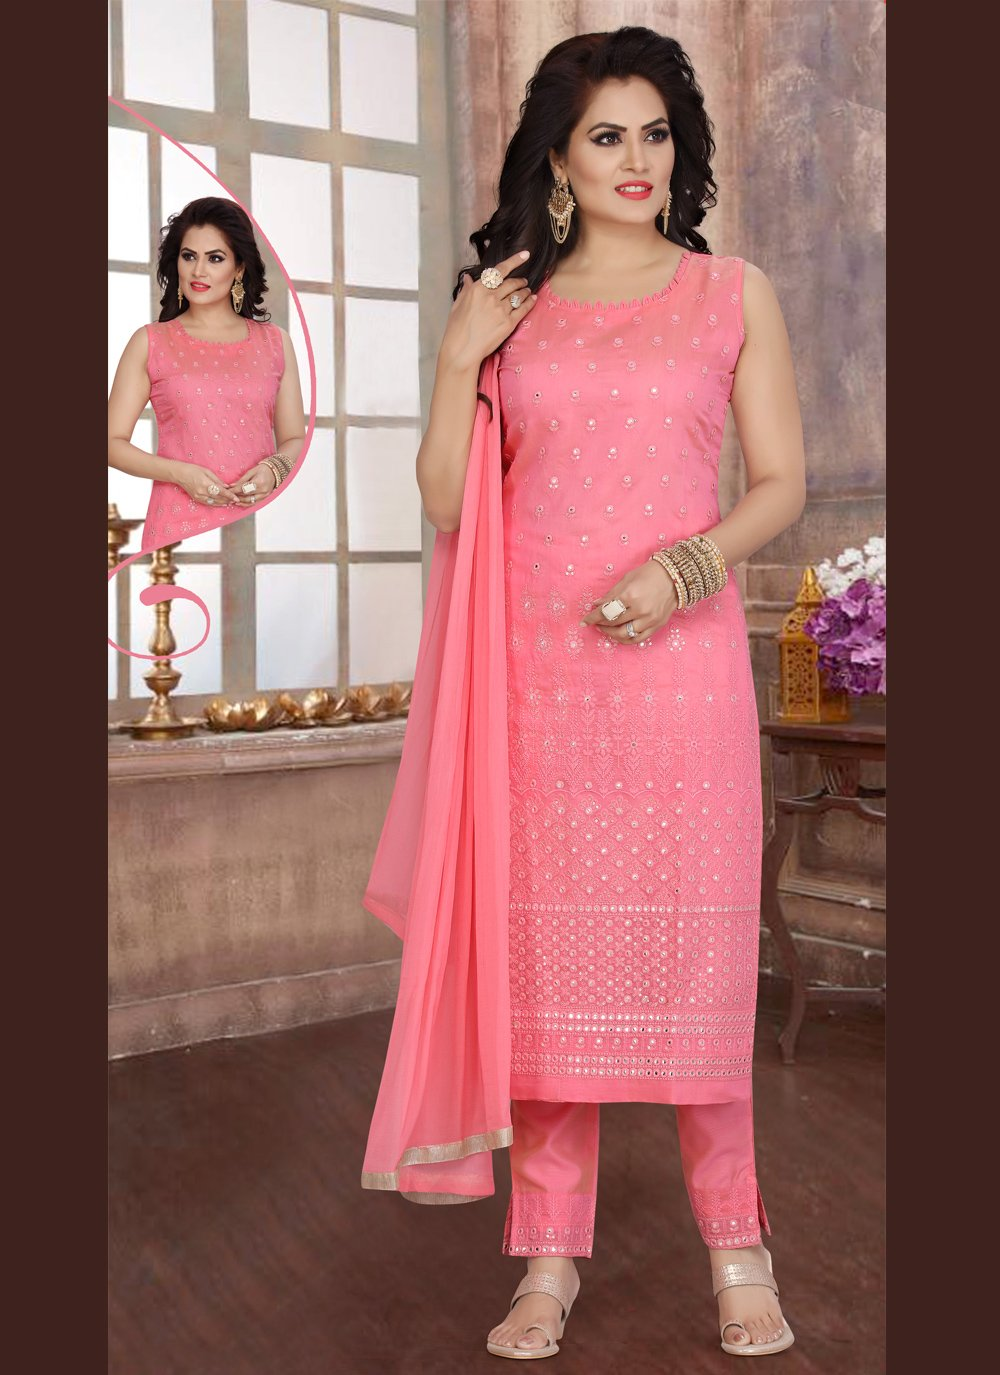 Pink Engagement Chanderi Readymade Suit